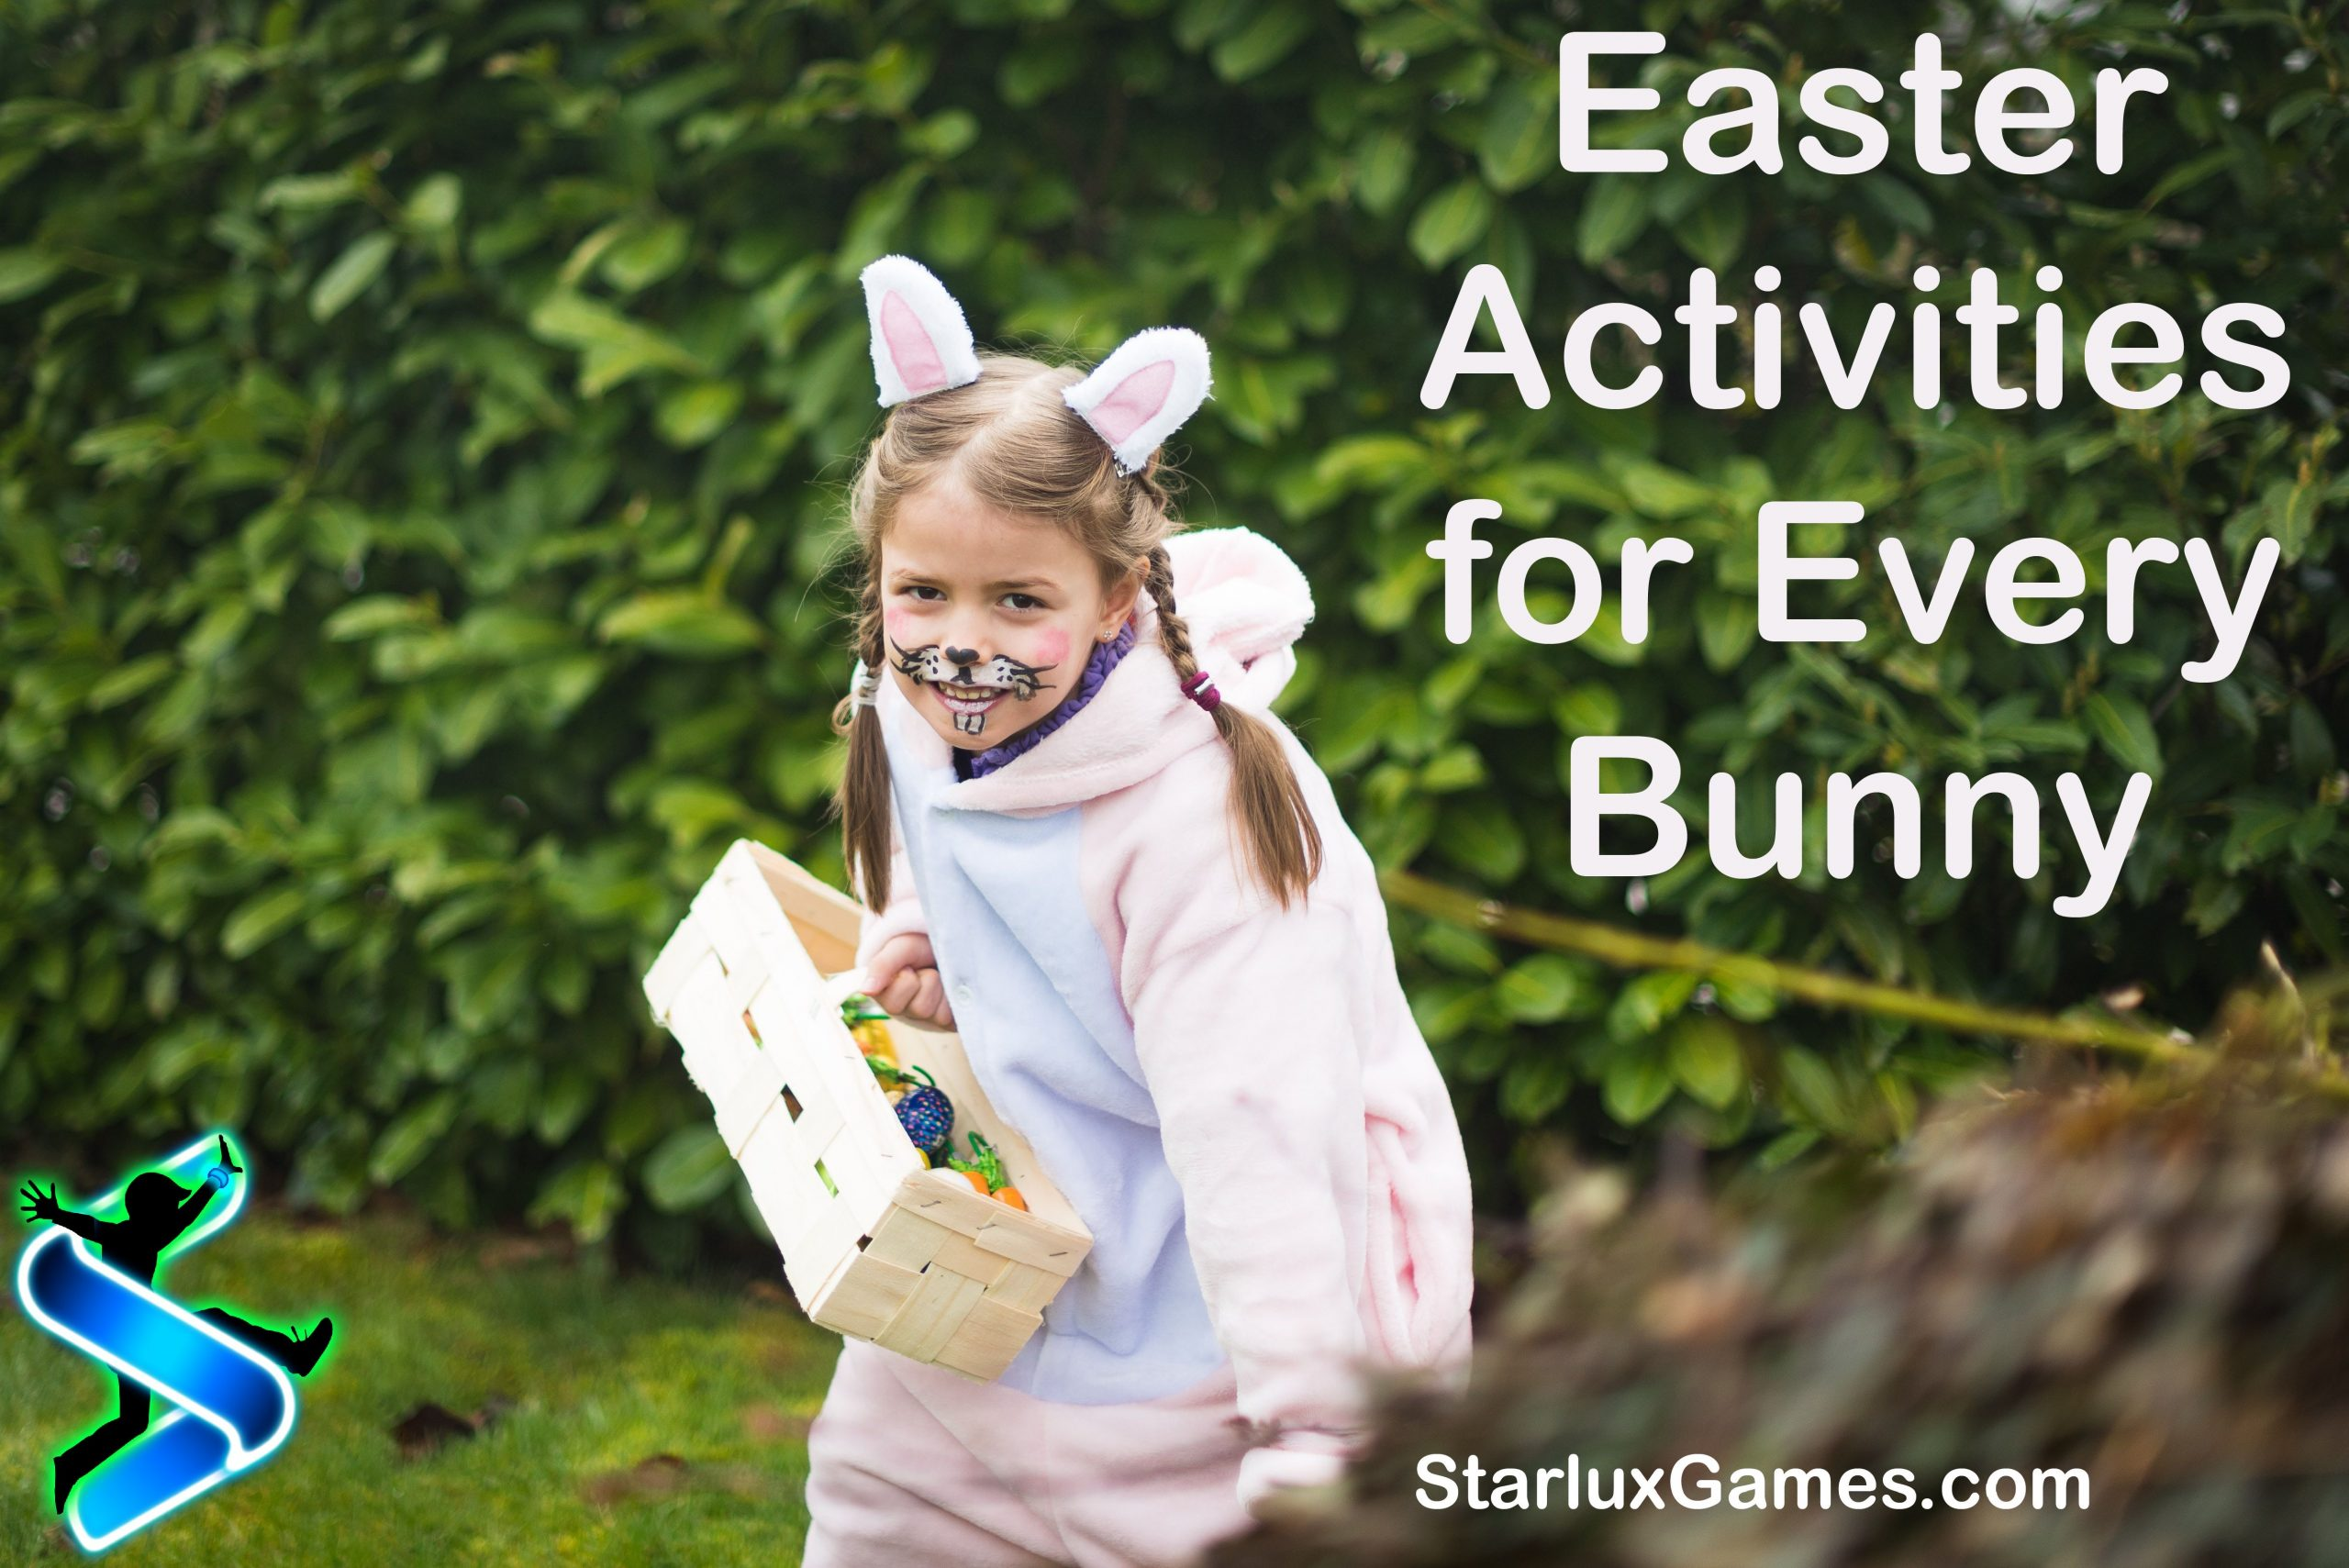 A girl dressed as the Easter bunny smiles mischievously at the camera while holding an Easter basket.